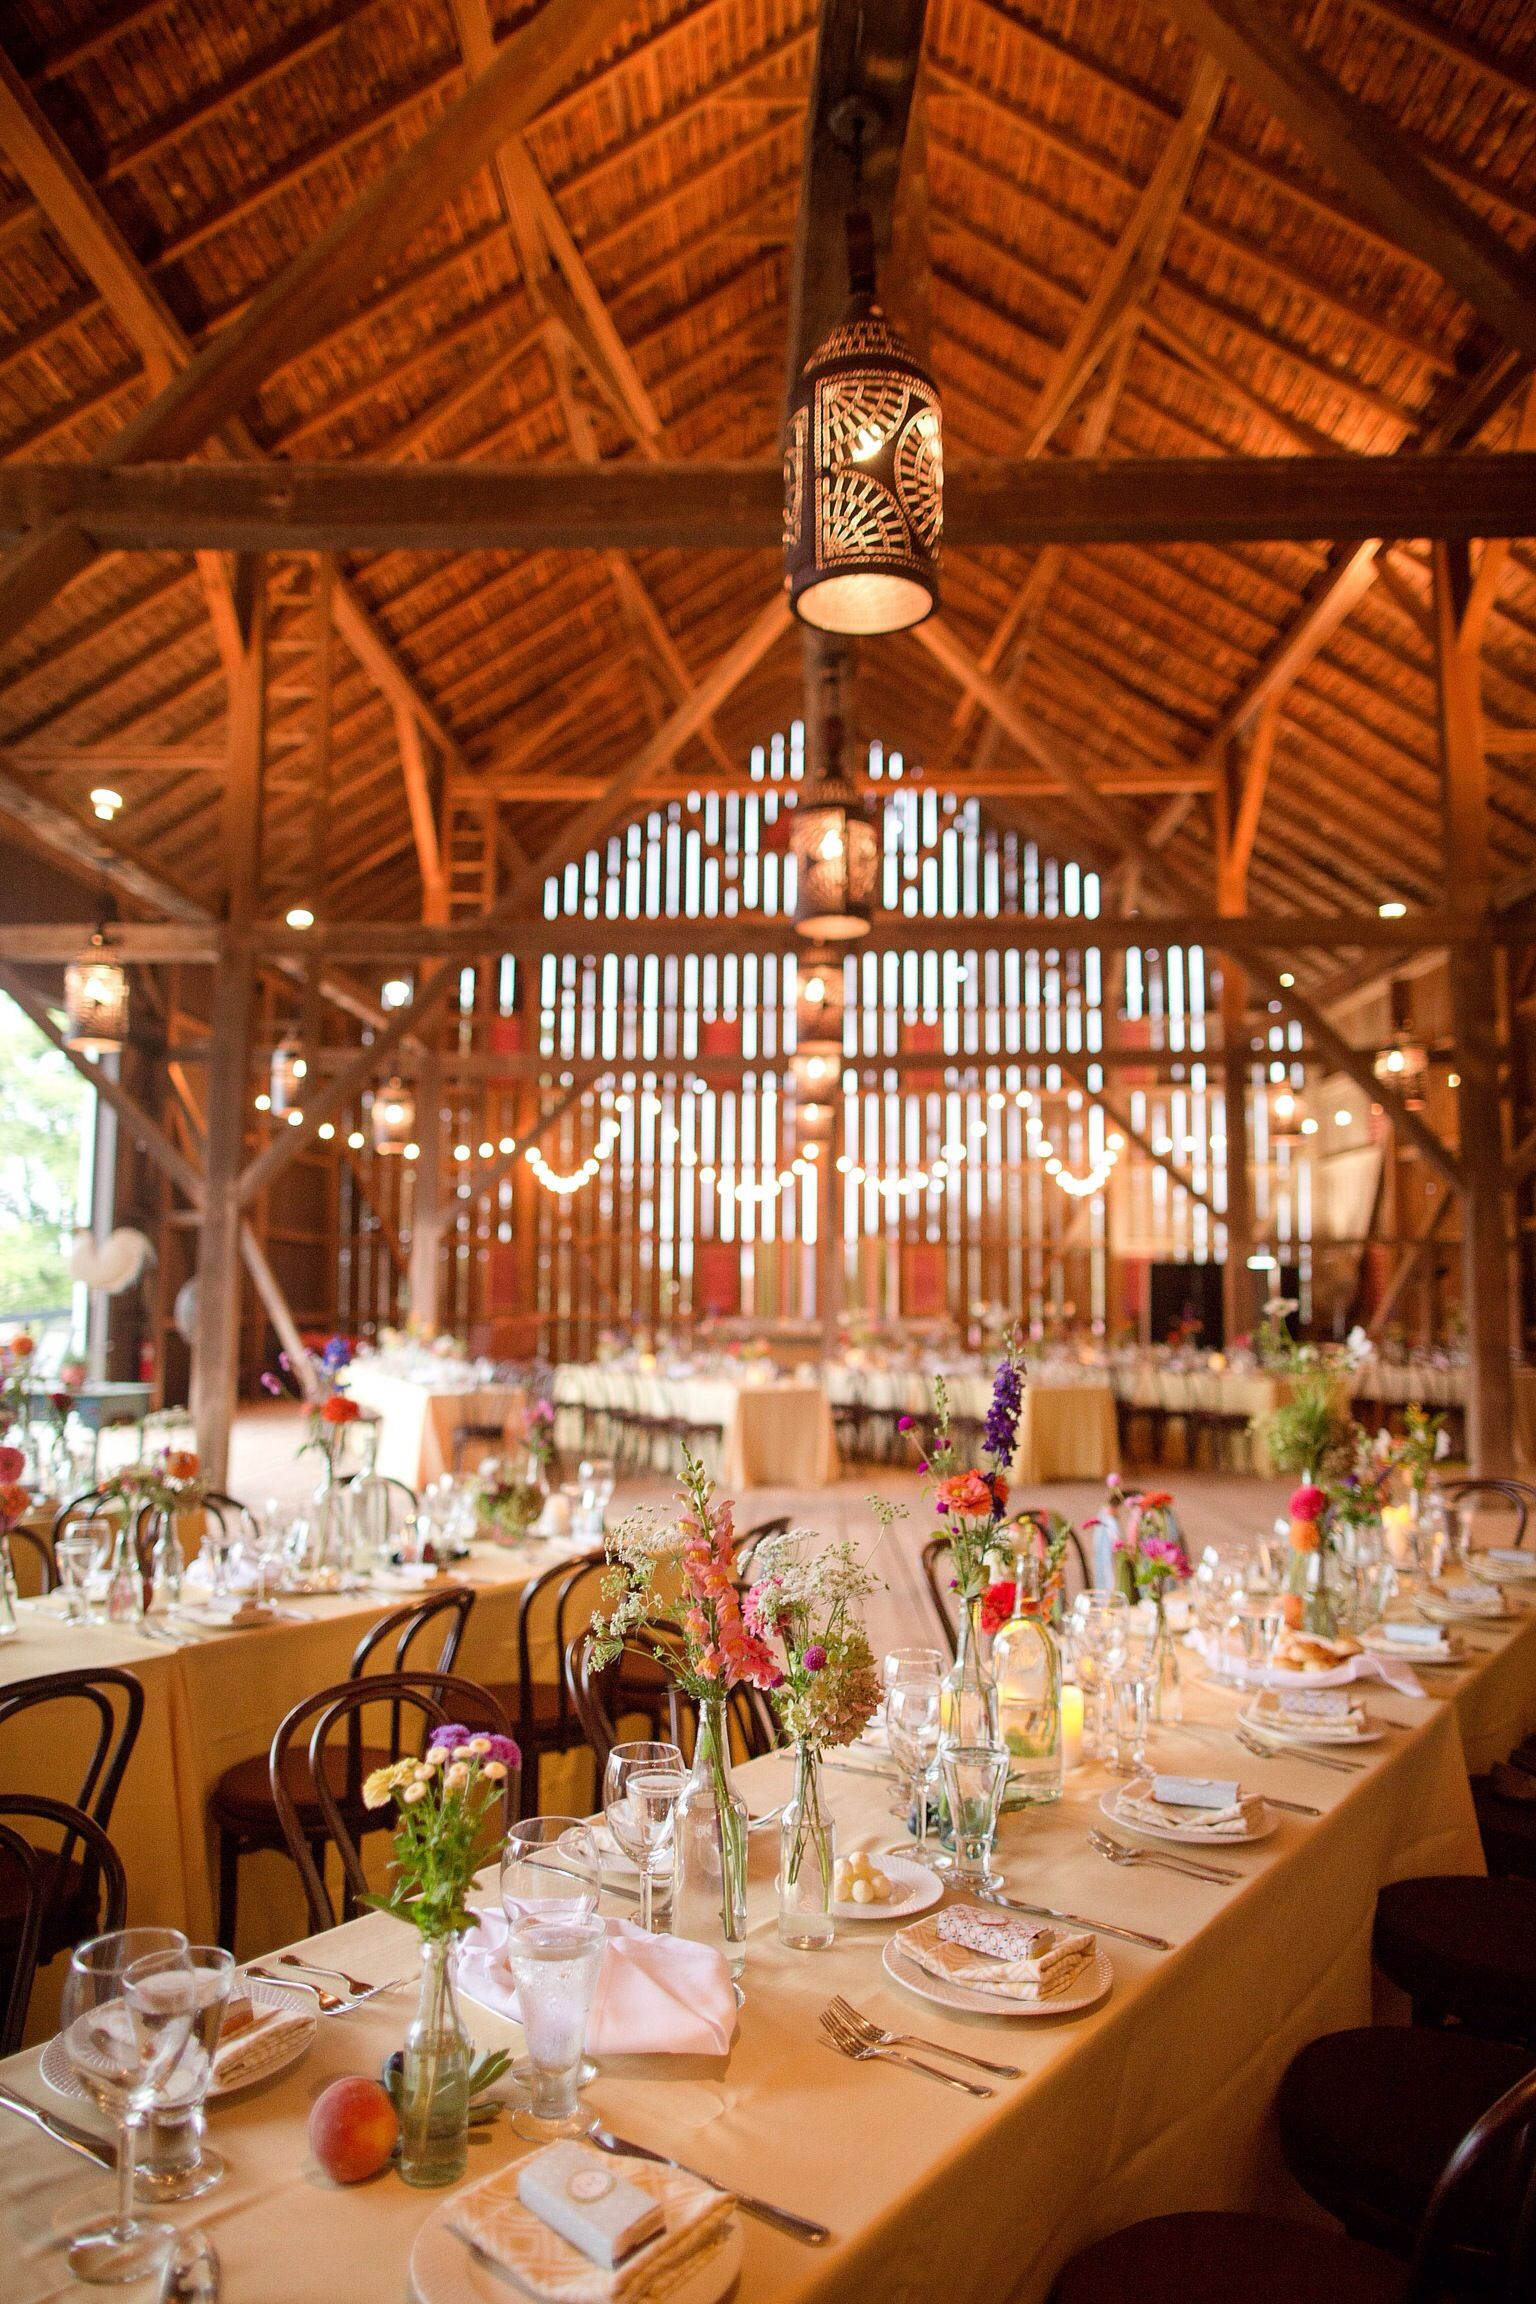 Riverside On The Potomace Barn Wedding Interior Reception Places Ideas Events